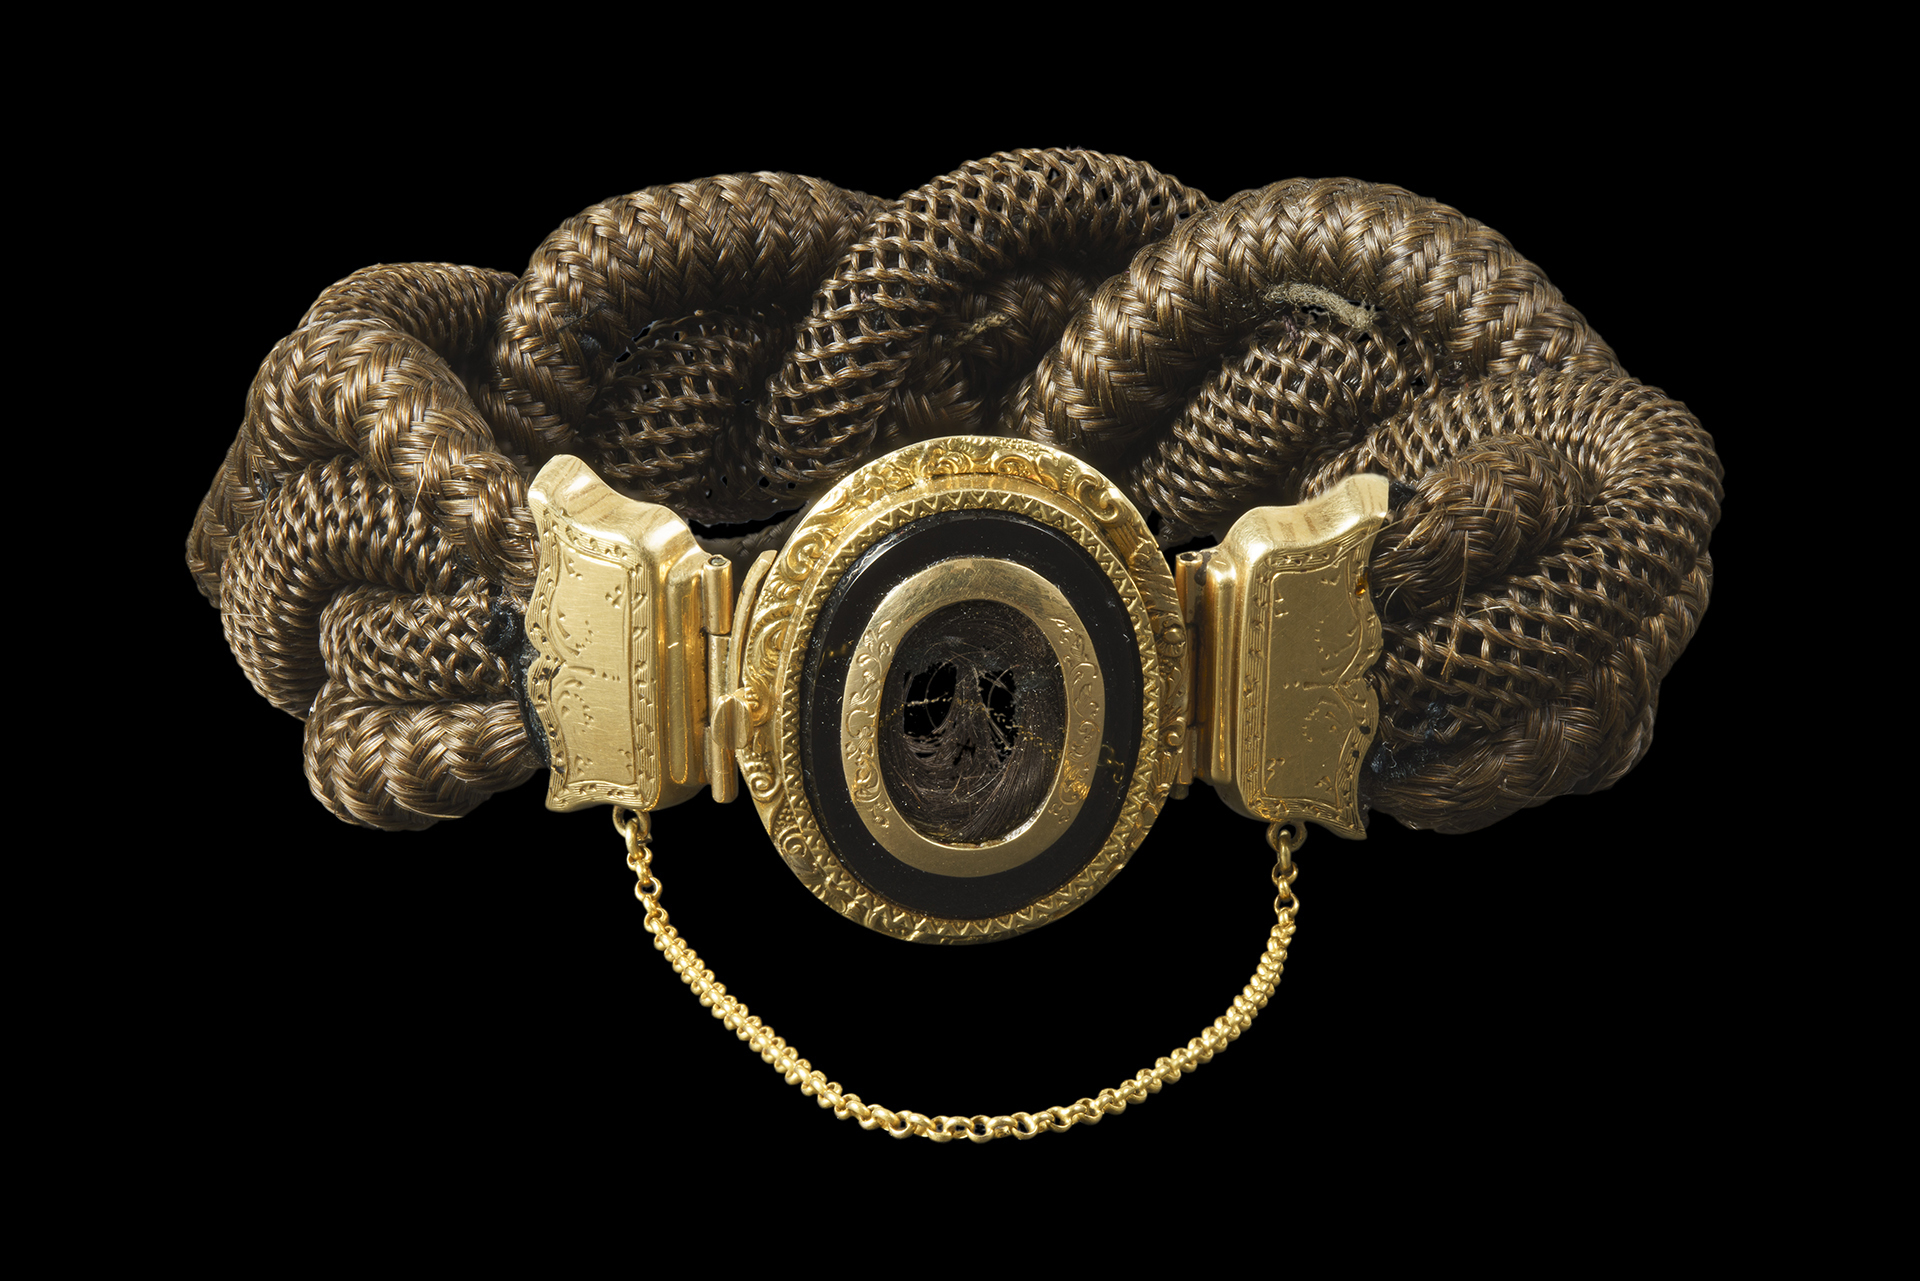 Lecture at the Museum Engiadinais: Jewelry in the 19th century